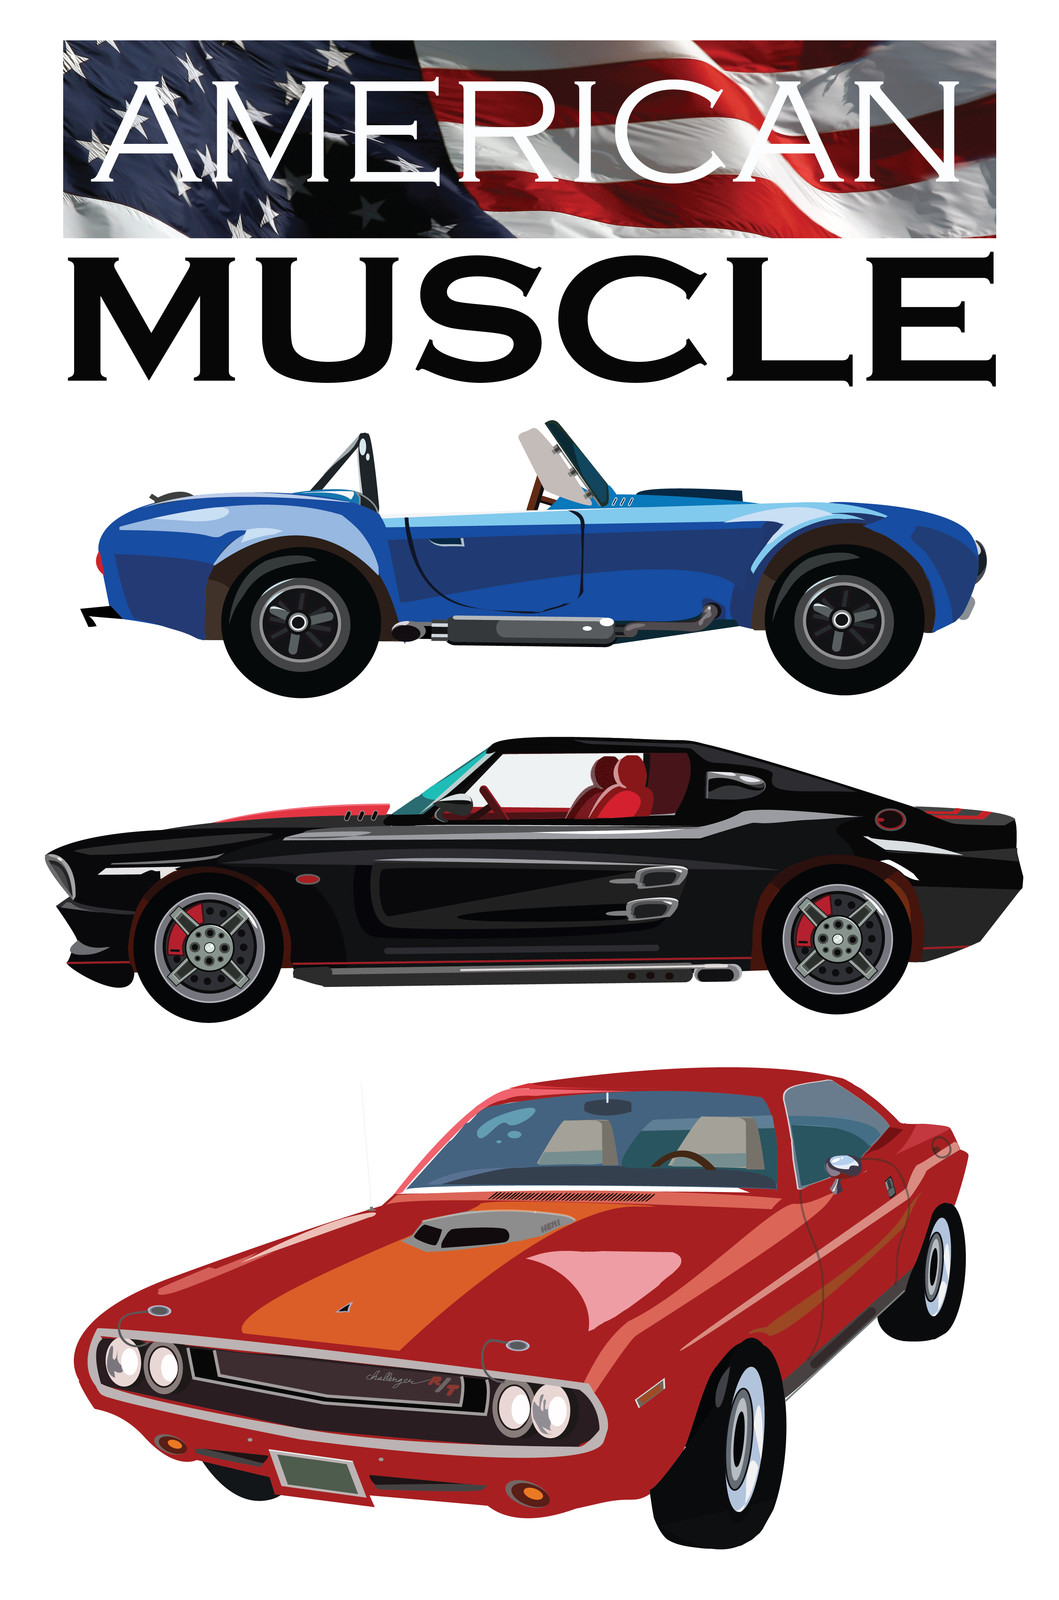 American Muscle Cars - Adobe Illustrator Project